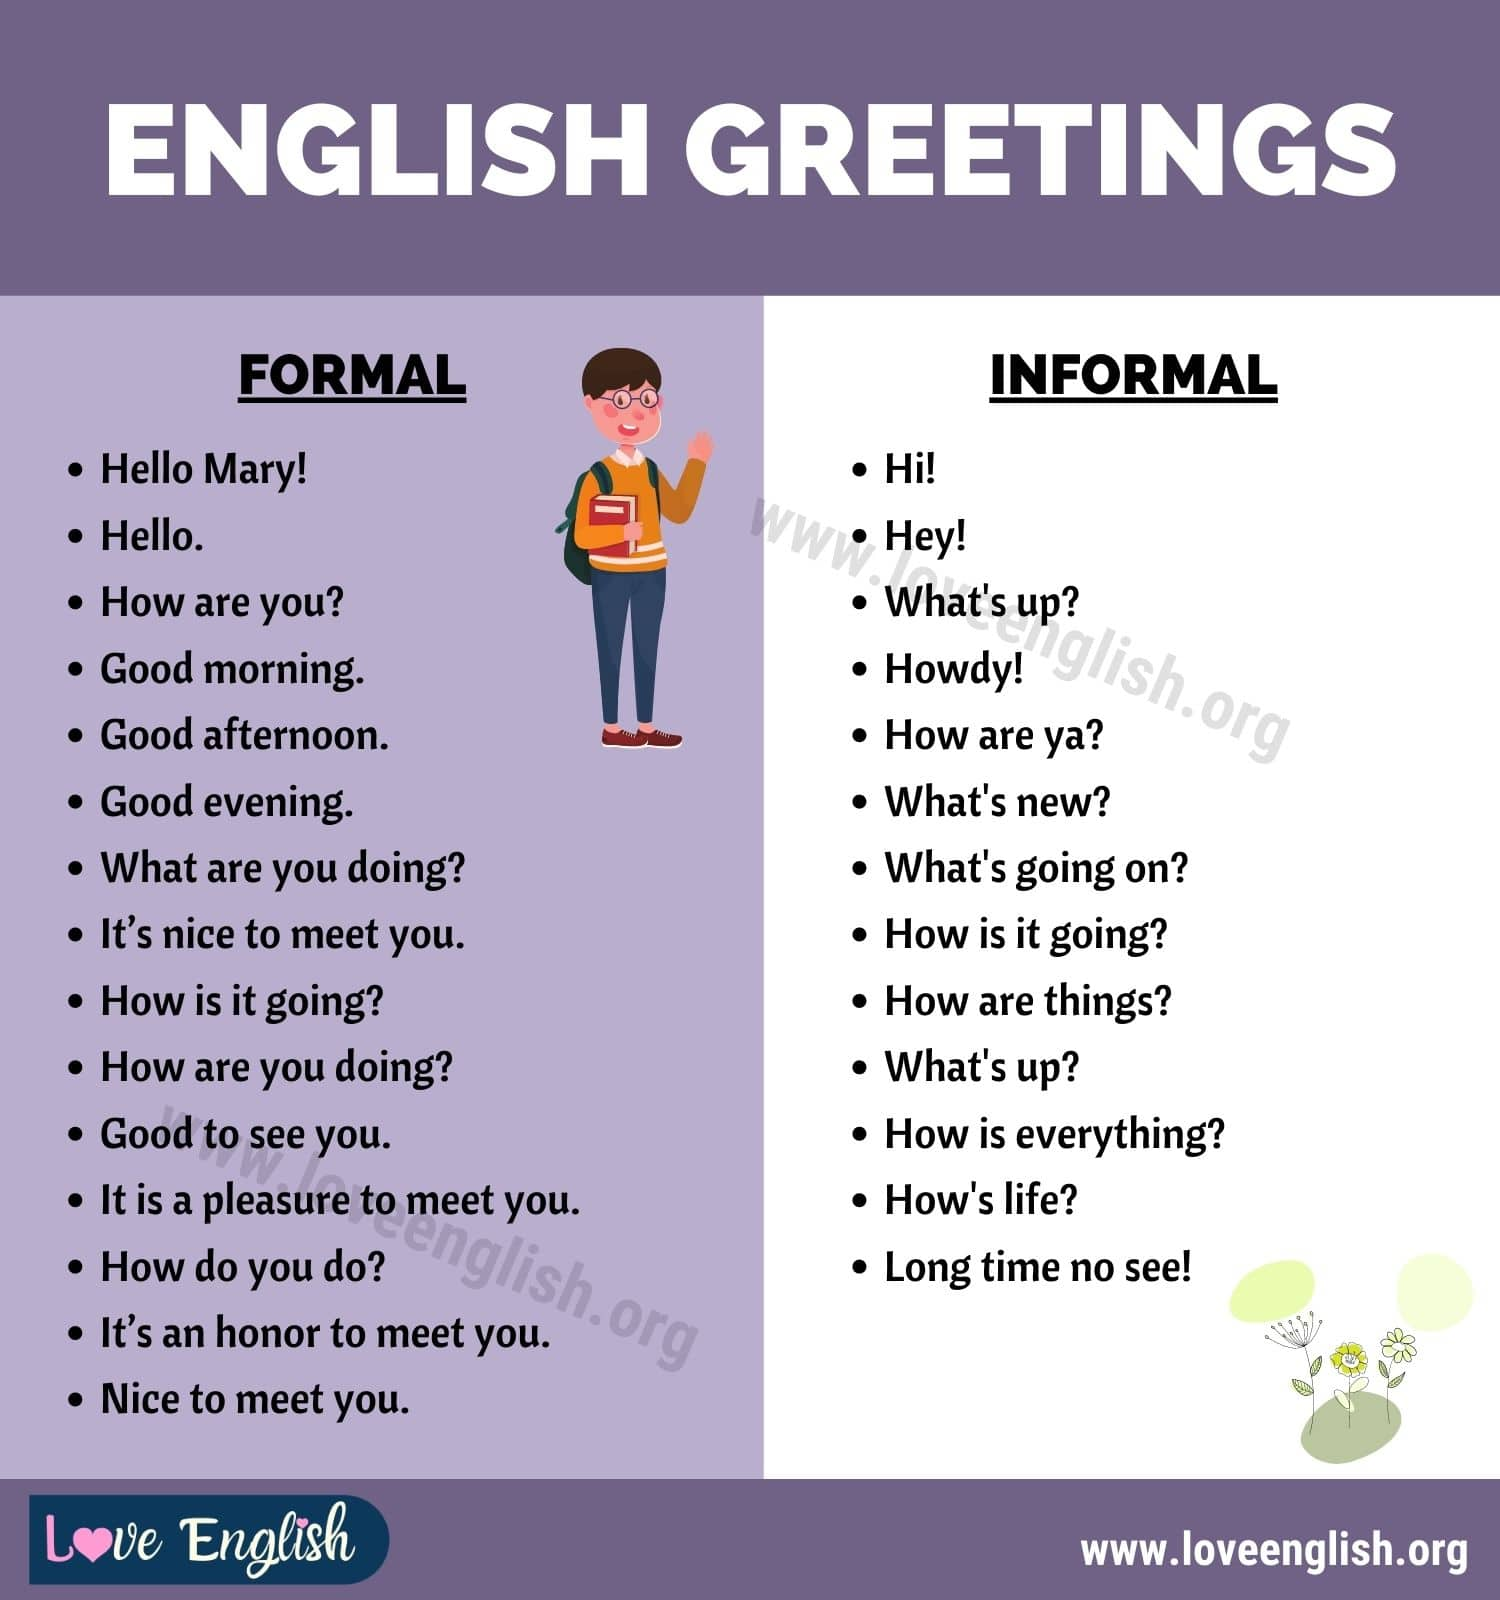 Greetings: 28 Useful Formal and Informal Greetings in English - Love English